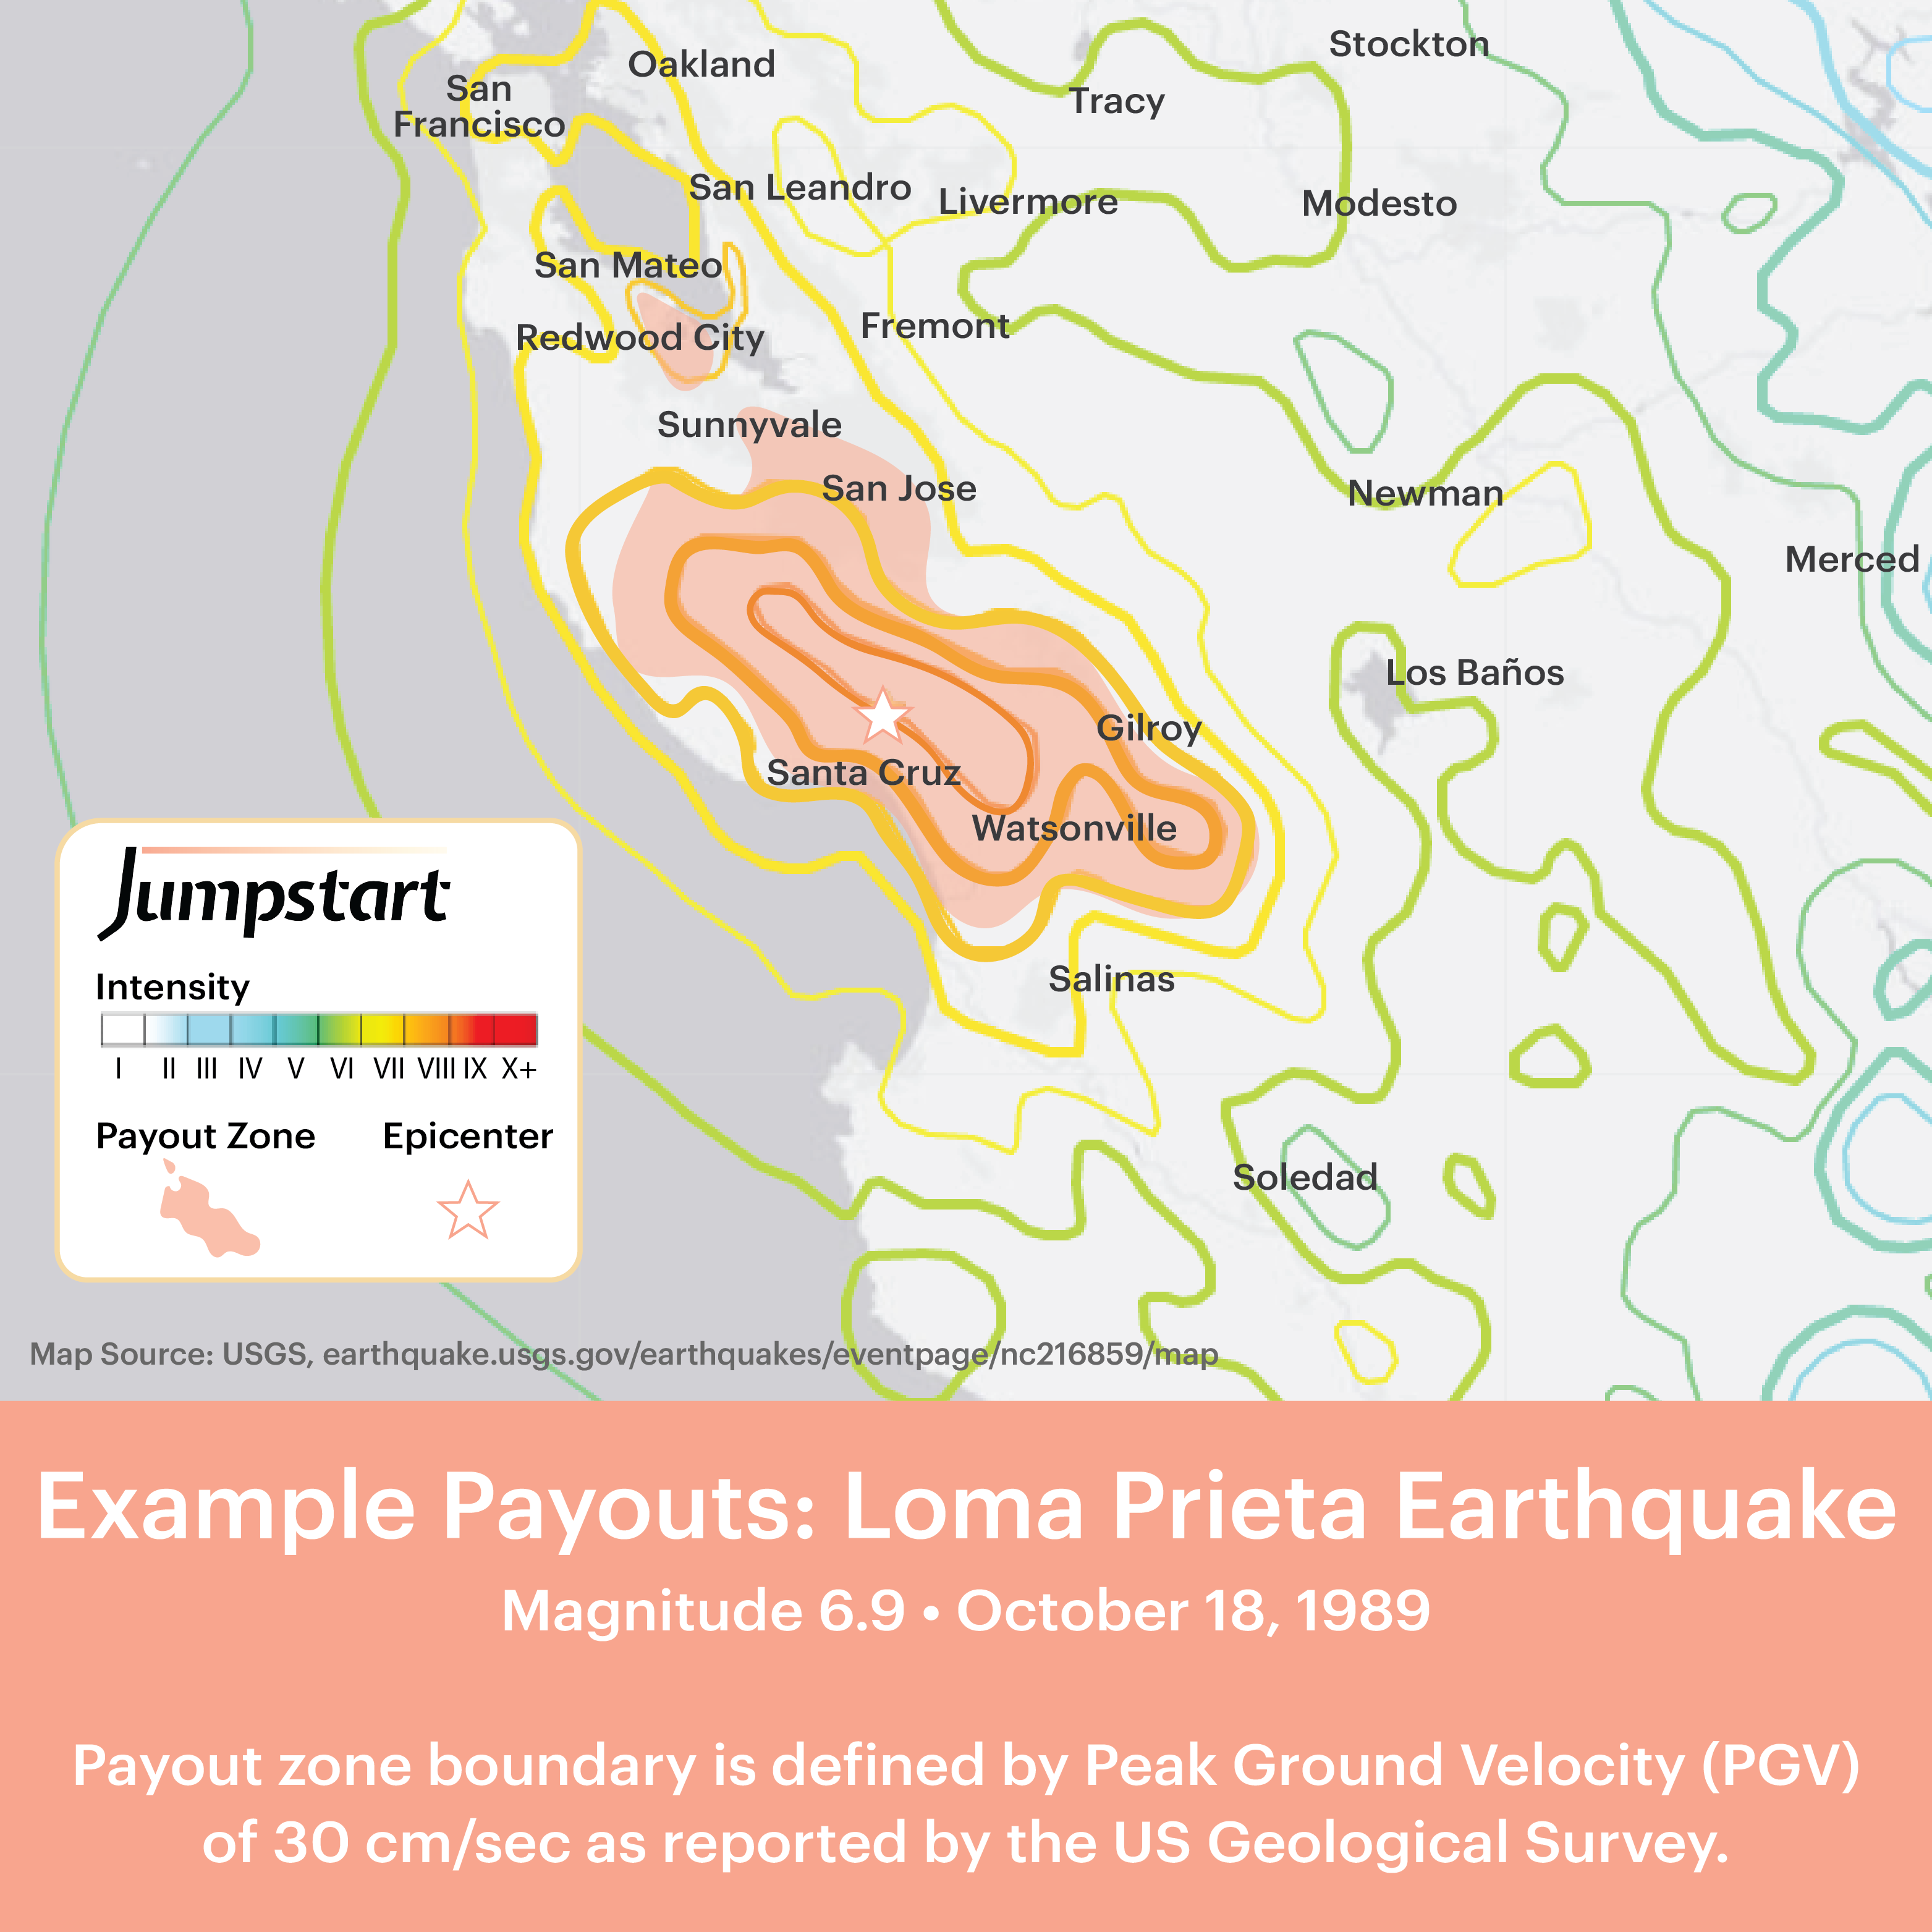 Usgs Earthquake Map San Francisco.Which Quakes Trigger Earthquake Insurance Payment Jumpstart Blog